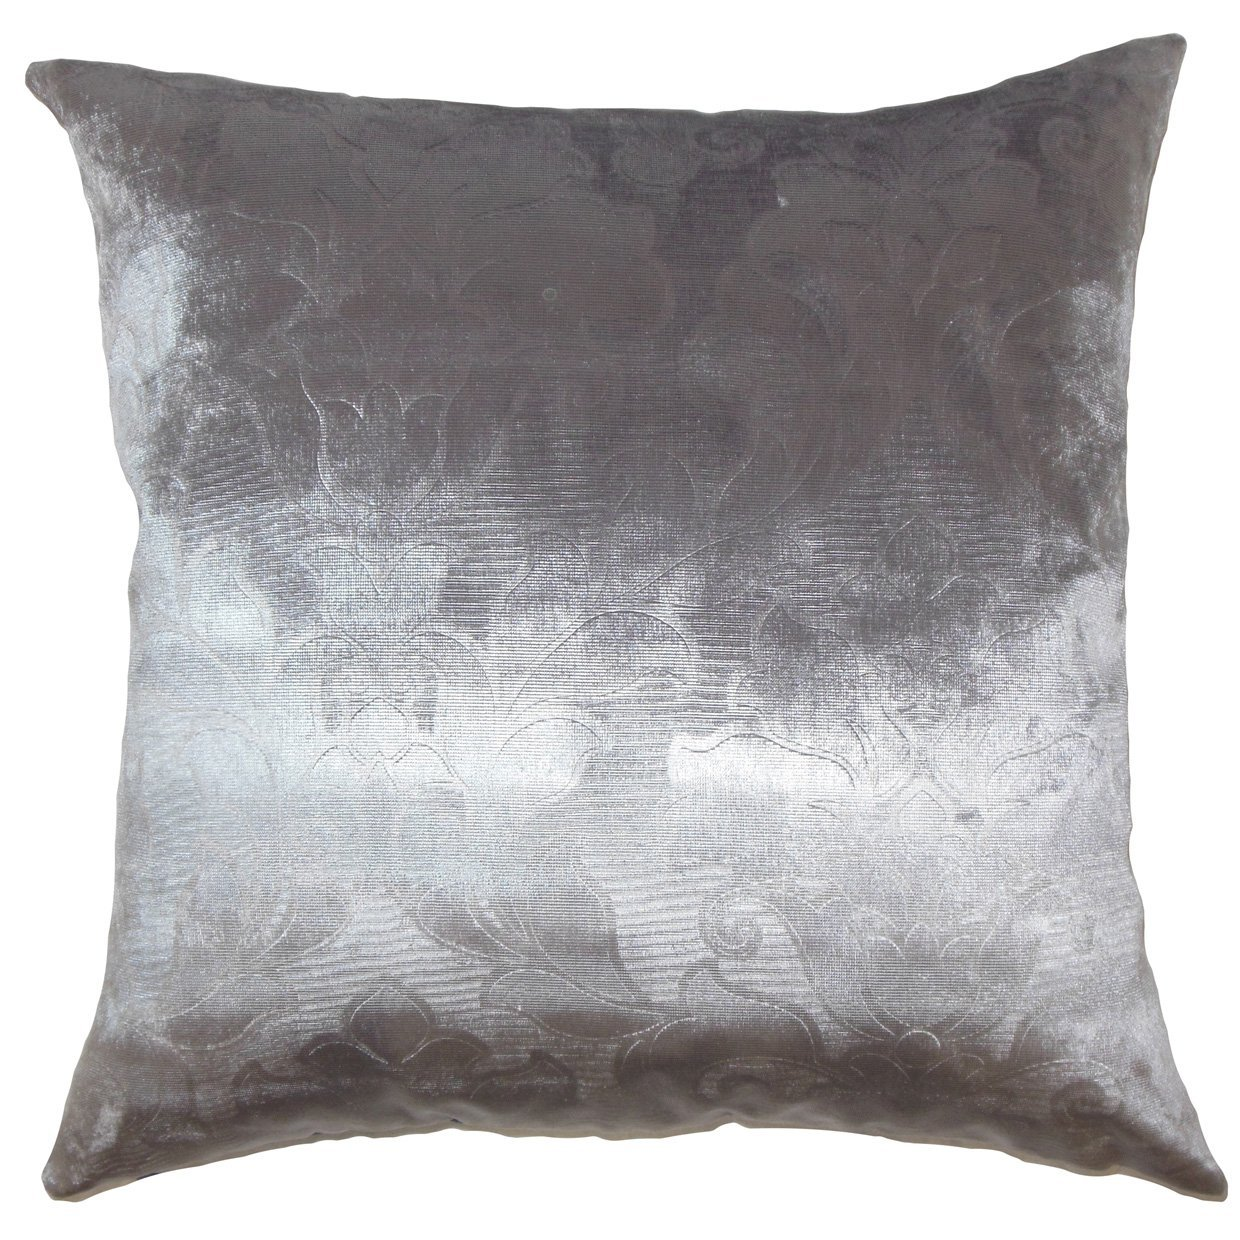 The Pillow Collection Yanisin Floral Throw Pillow Cover